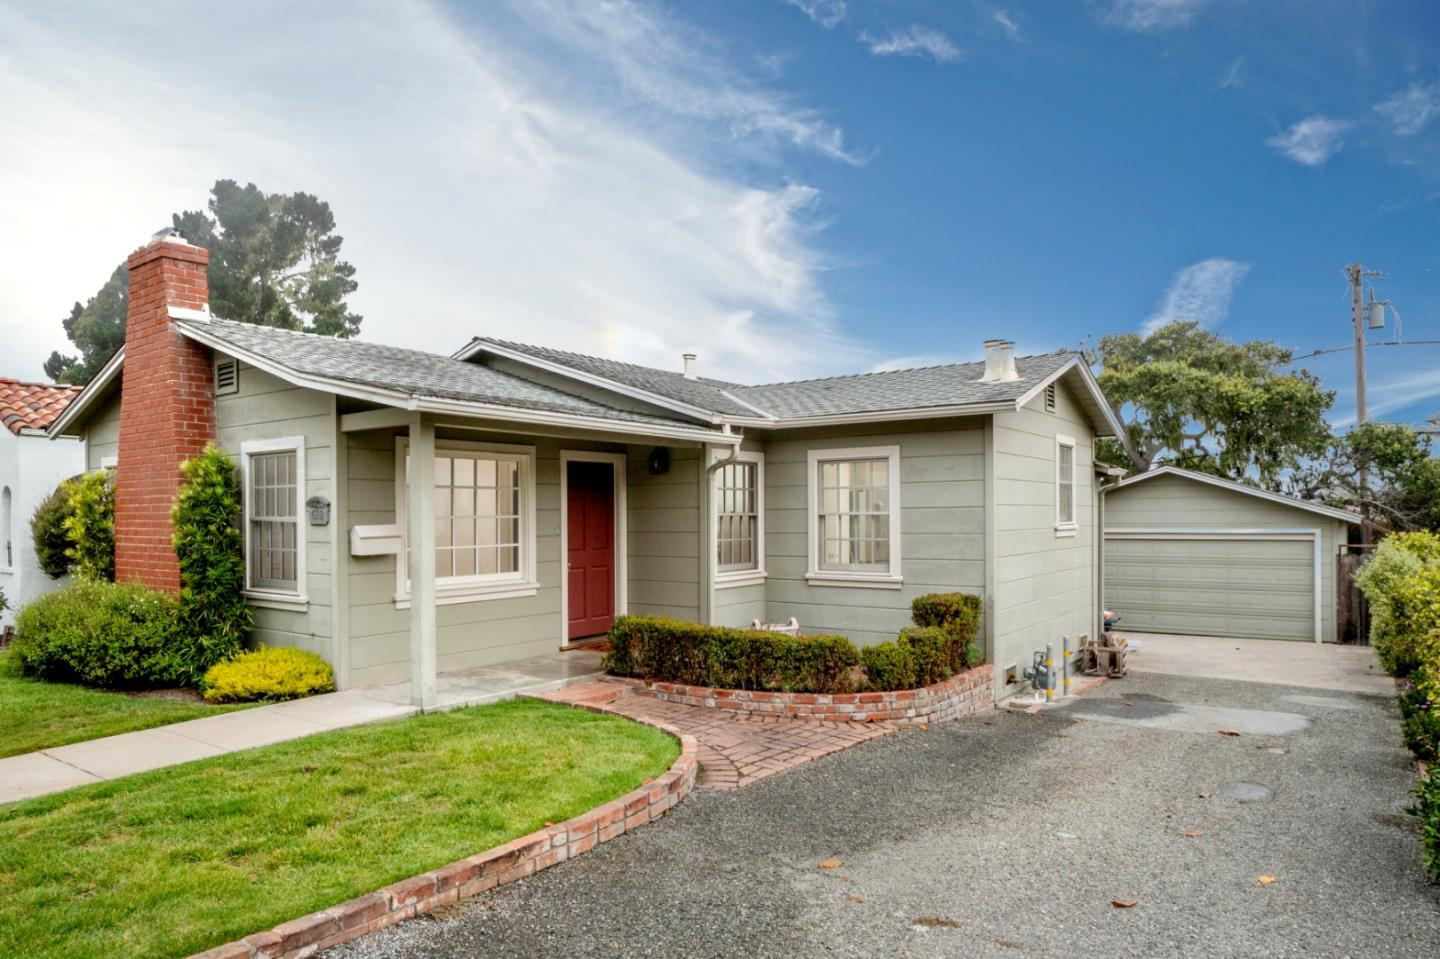 Detail Gallery Image 1 of 1 For 632 Spazier Ave, Pacific Grove, CA, 93950 - 3 Beds | 2 Baths